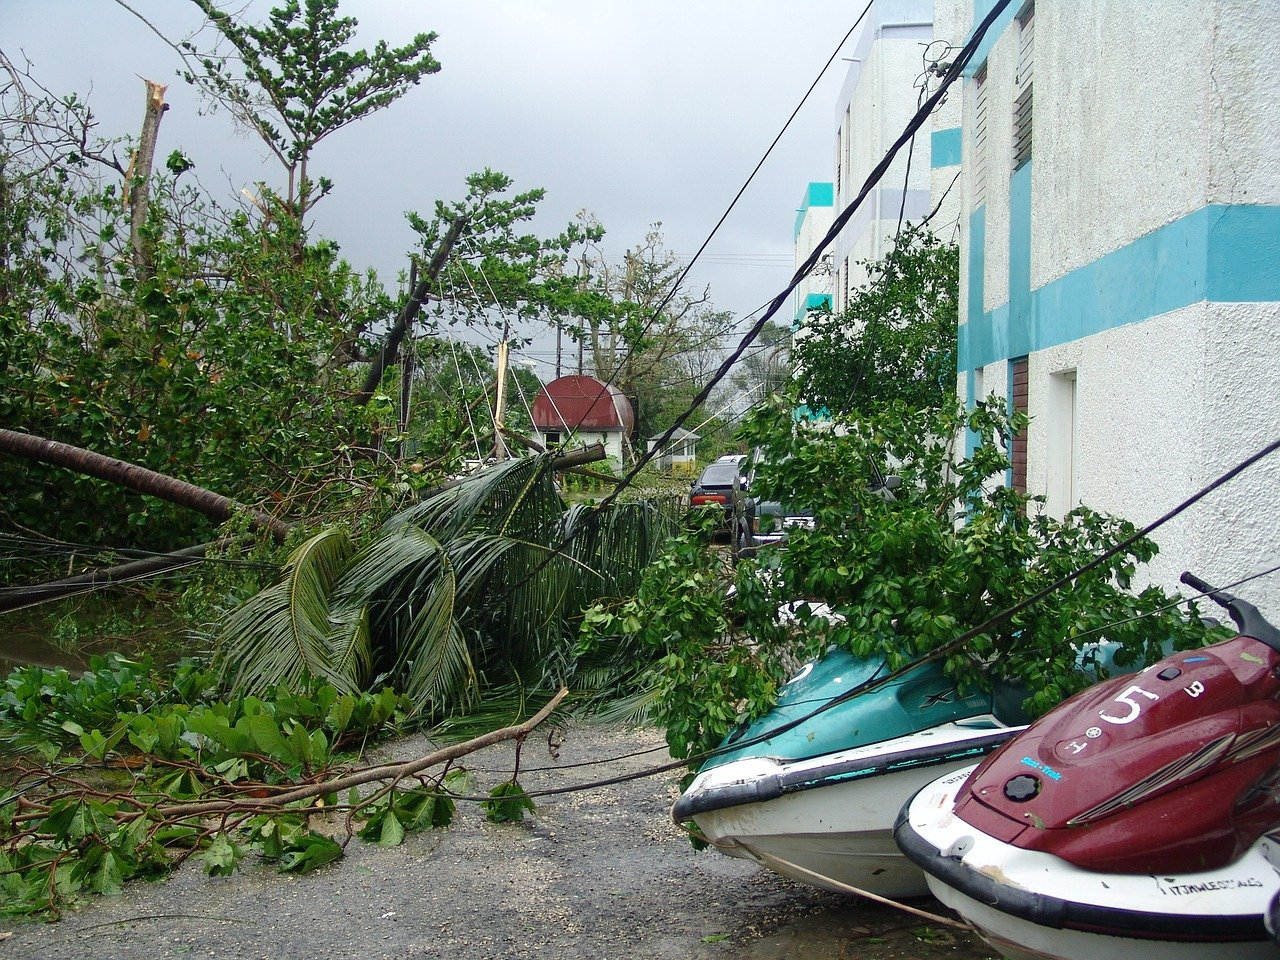 If you find that your vacation spot is in the path of potential destruction, here's what to do if your destination is going to be hit by a hurricane.